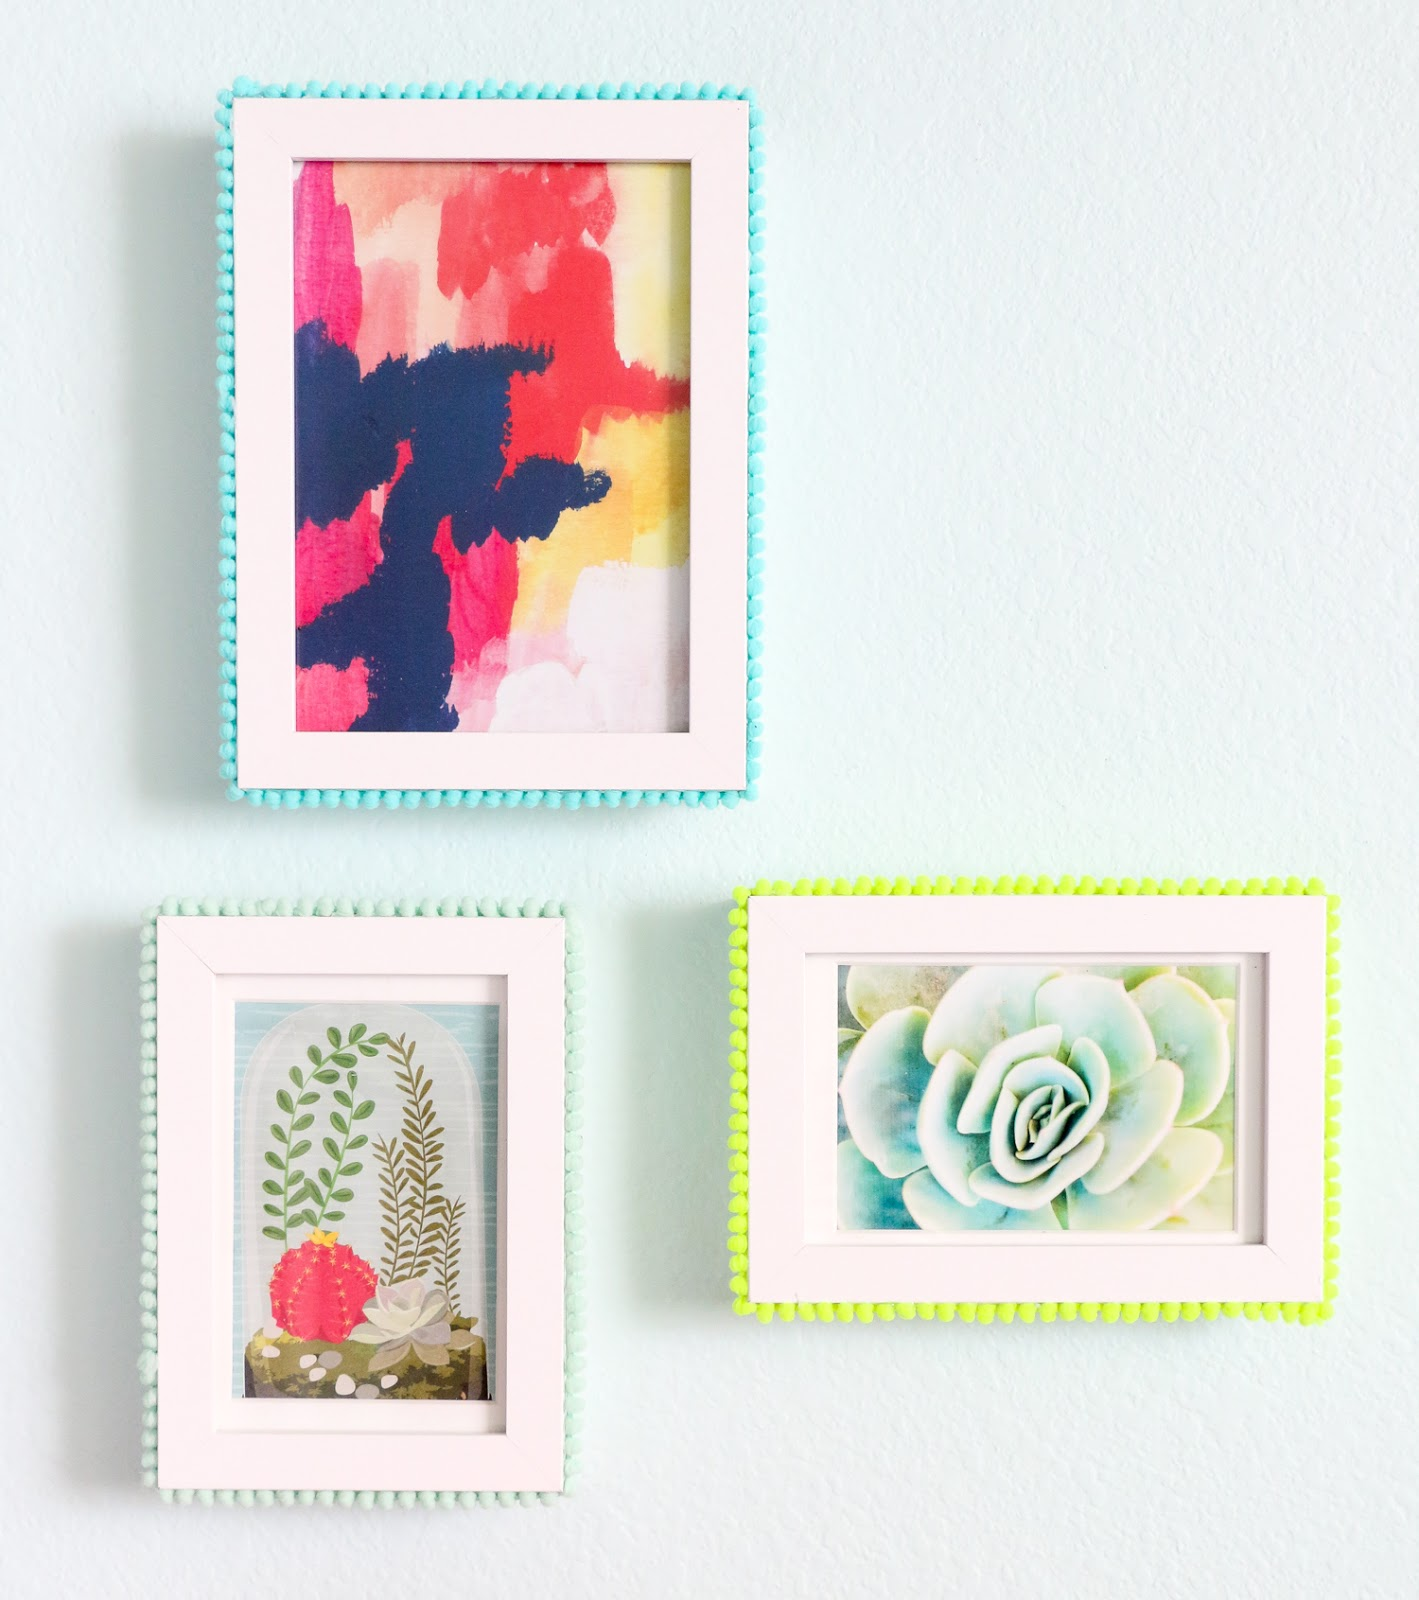 Craft It - Pom Pom Picture Frames - A Kailo Chic Life